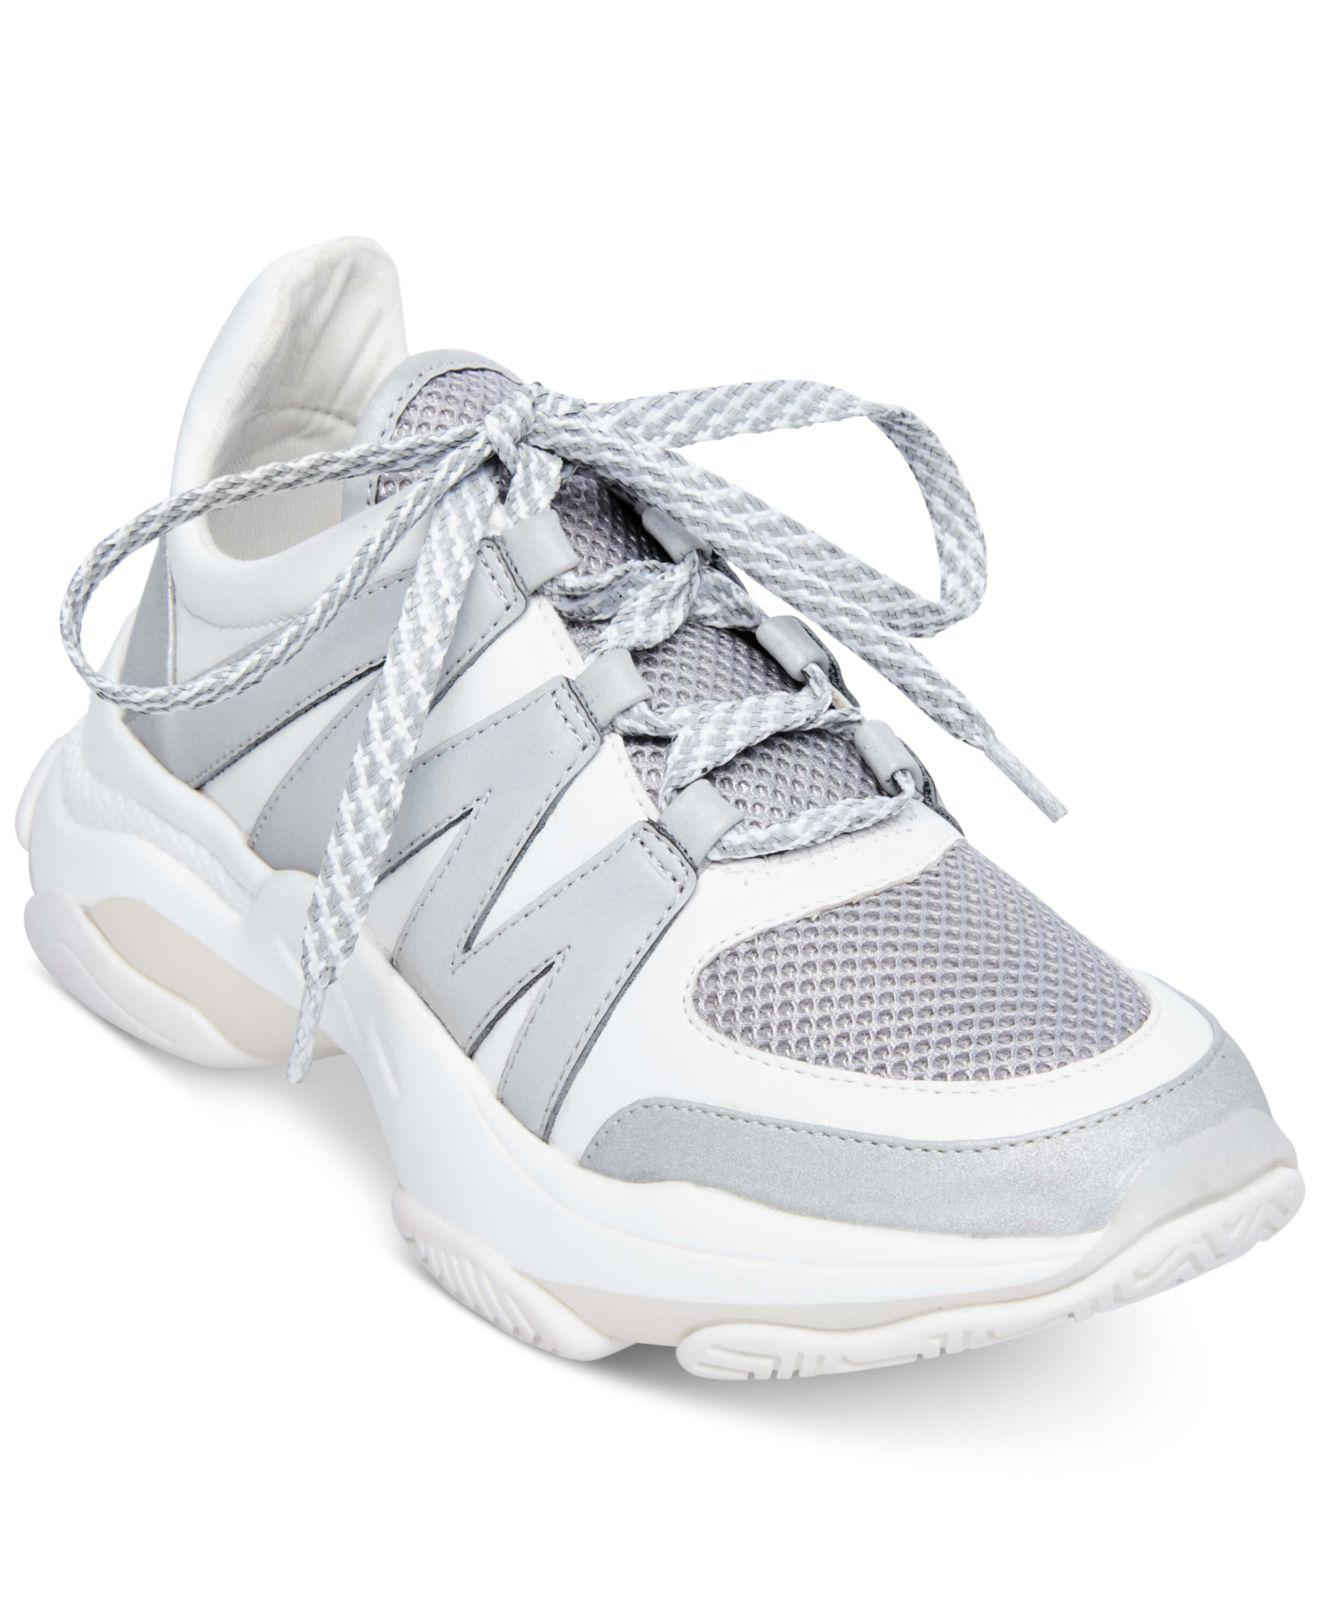 dbbd2e3189b Steve Madden Maximus Sneakers in Gray - Lyst